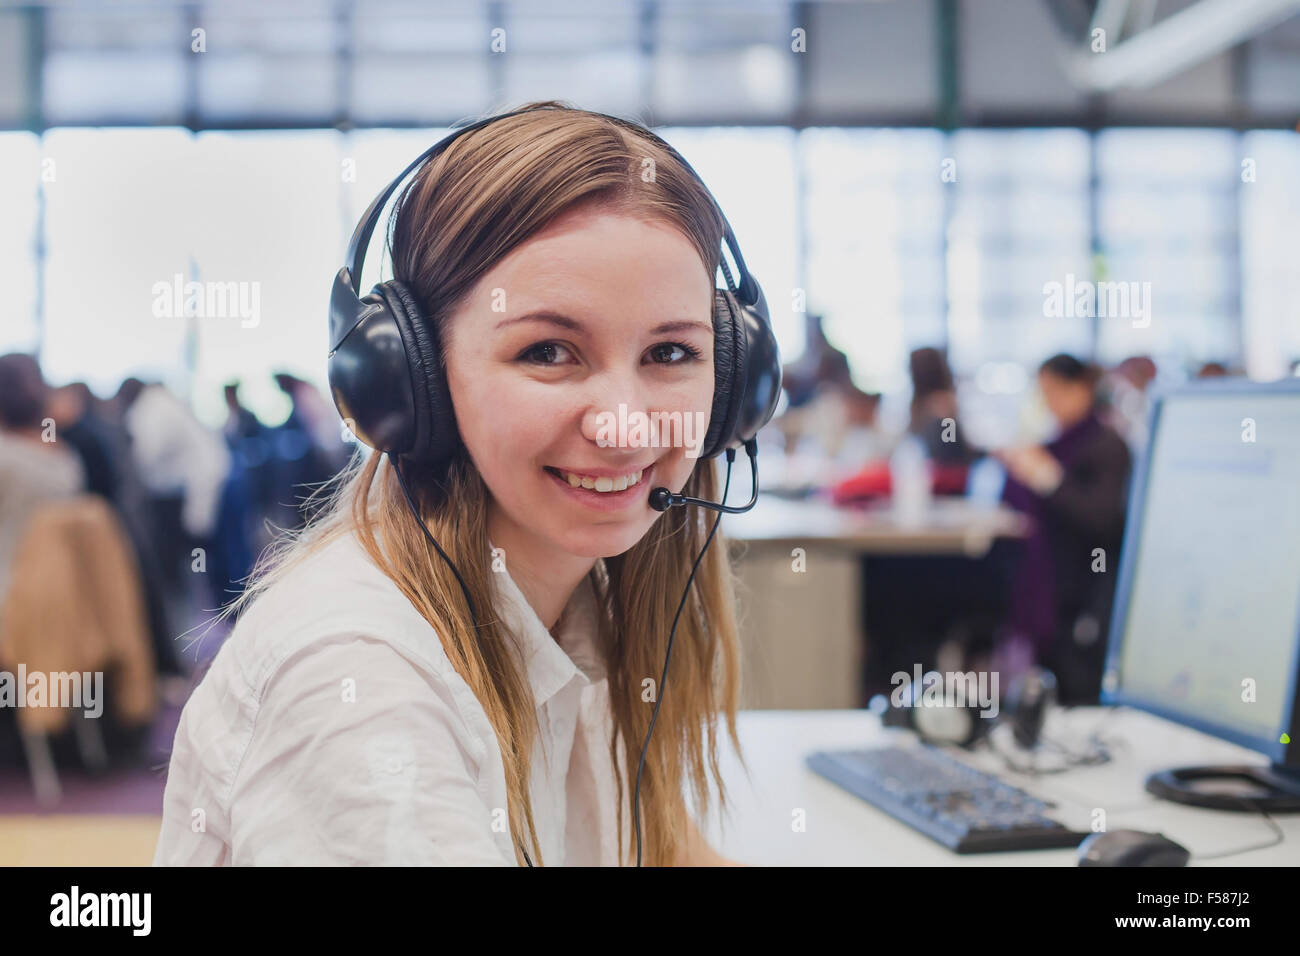 happy student with headphones and computer in university - Stock Image